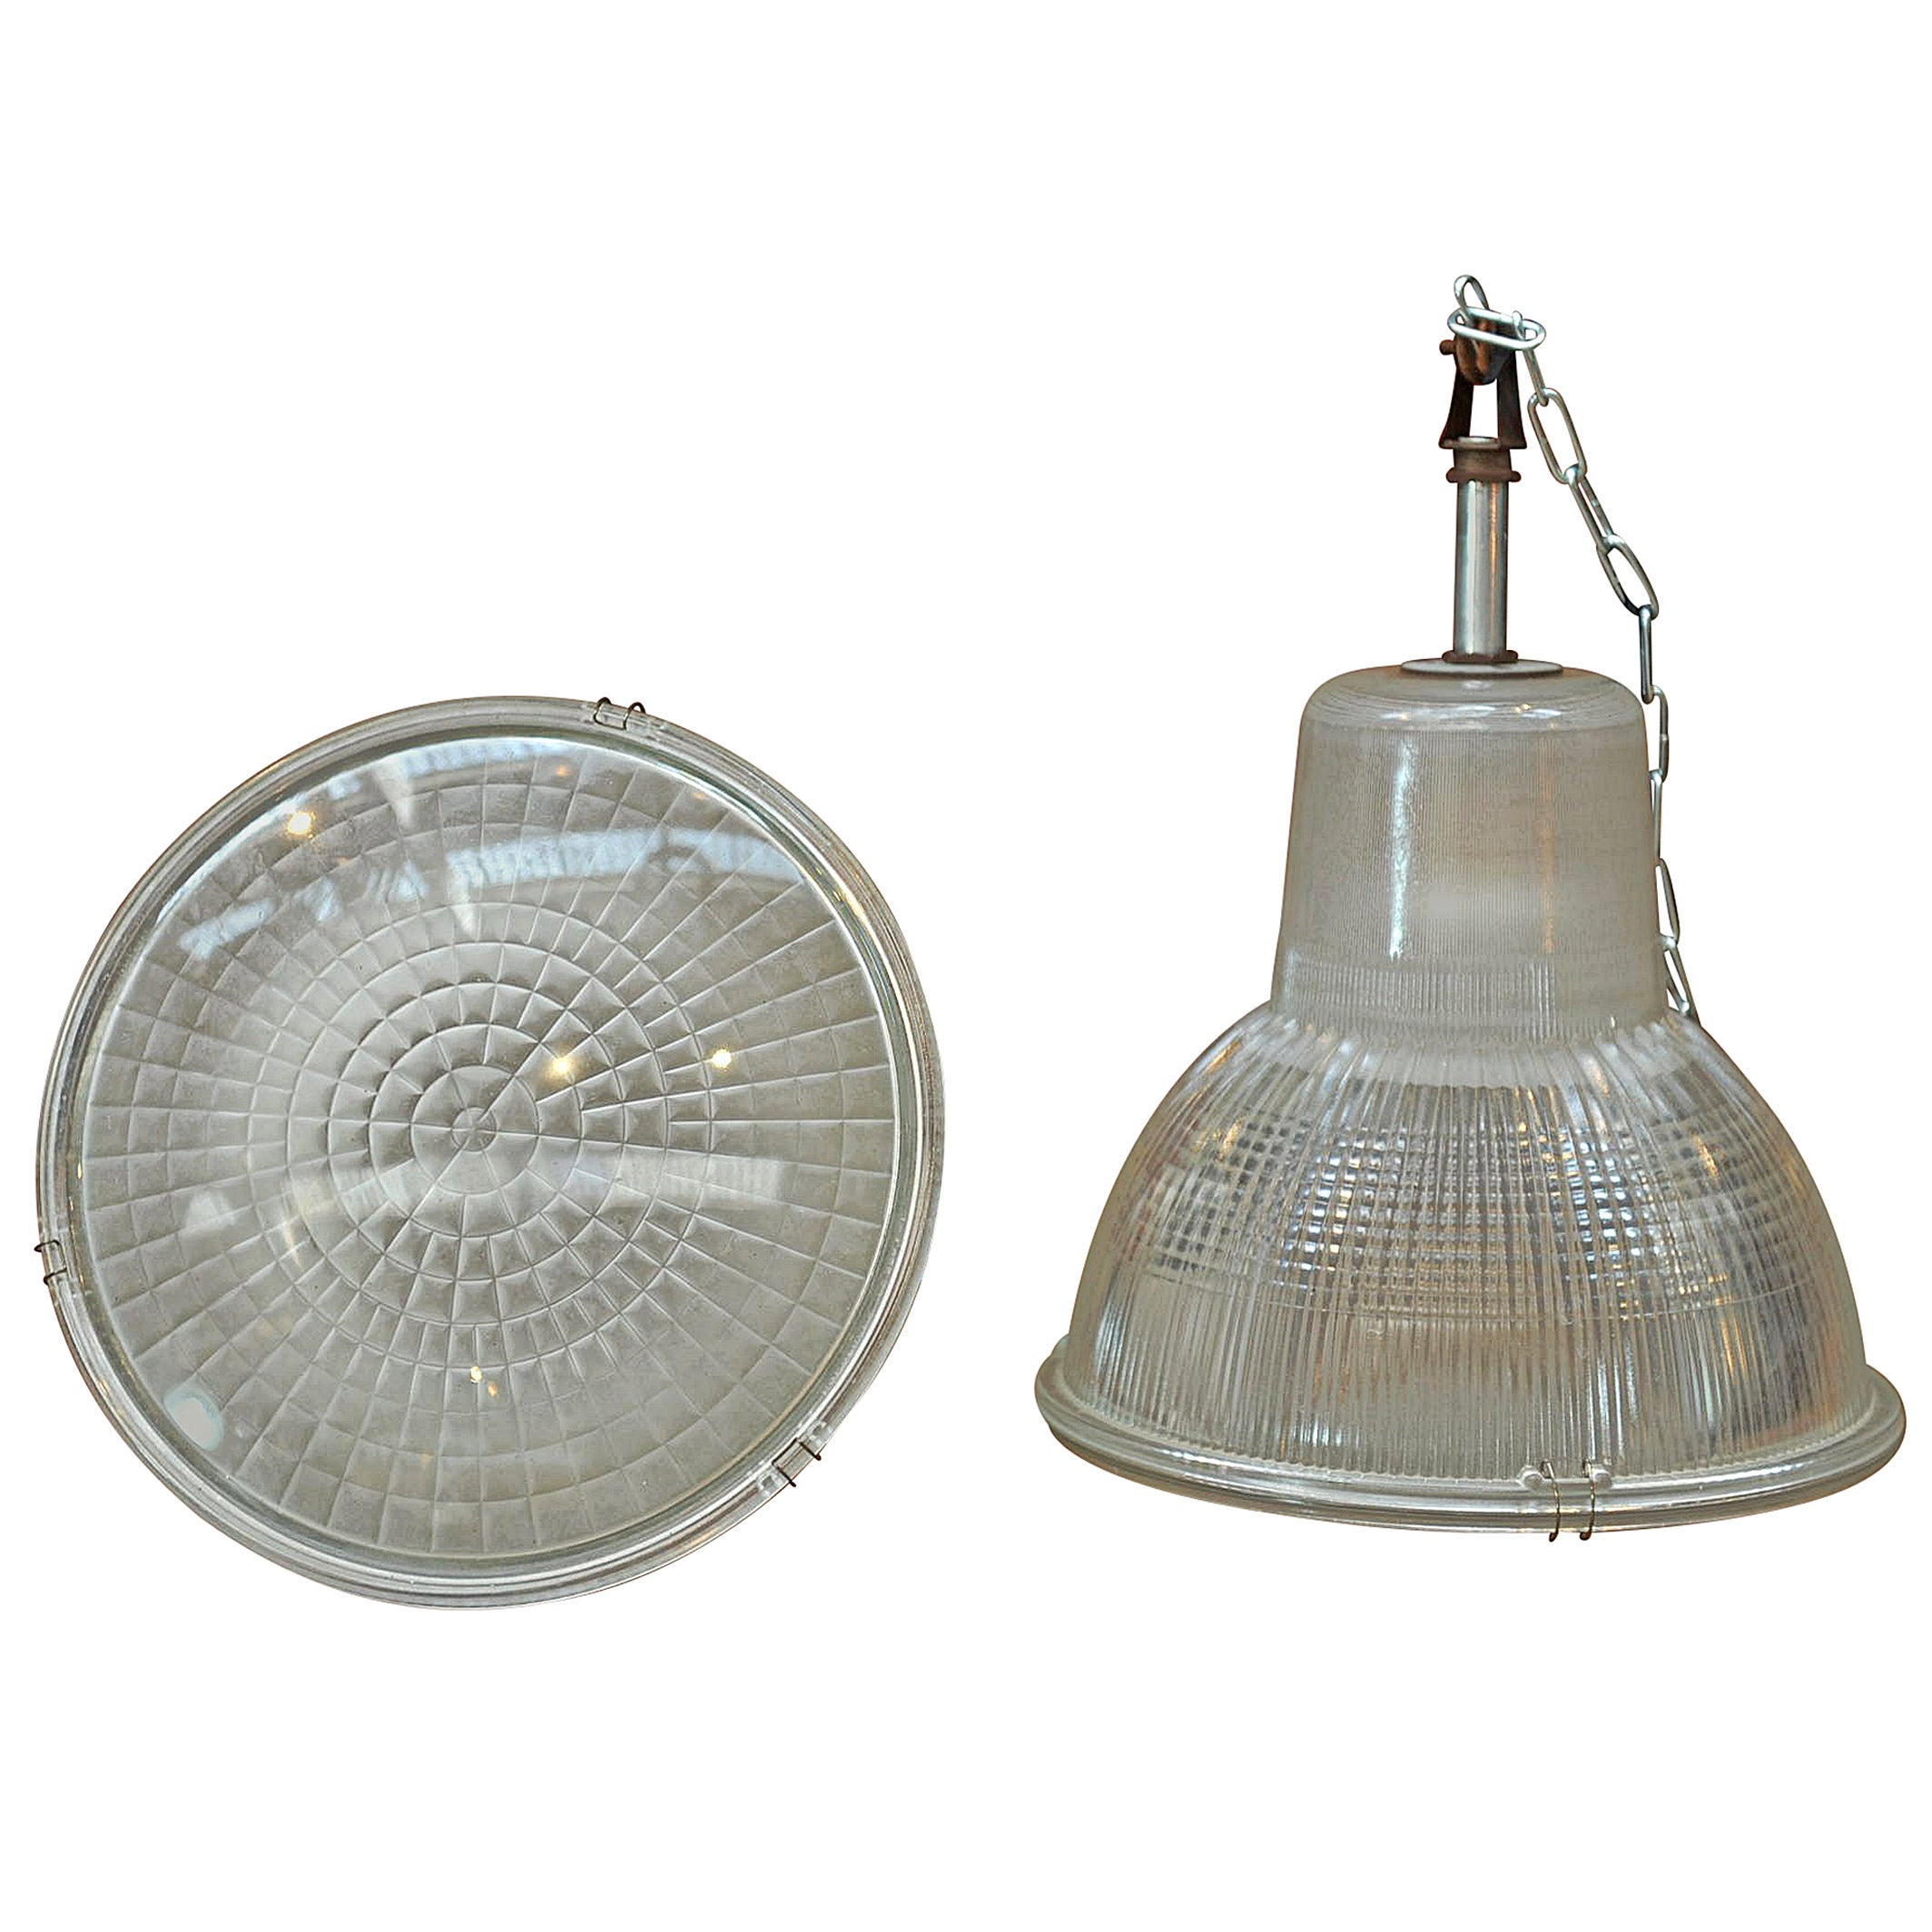 Holophane Paris France Glass Factory Pendant Lights, 1960s